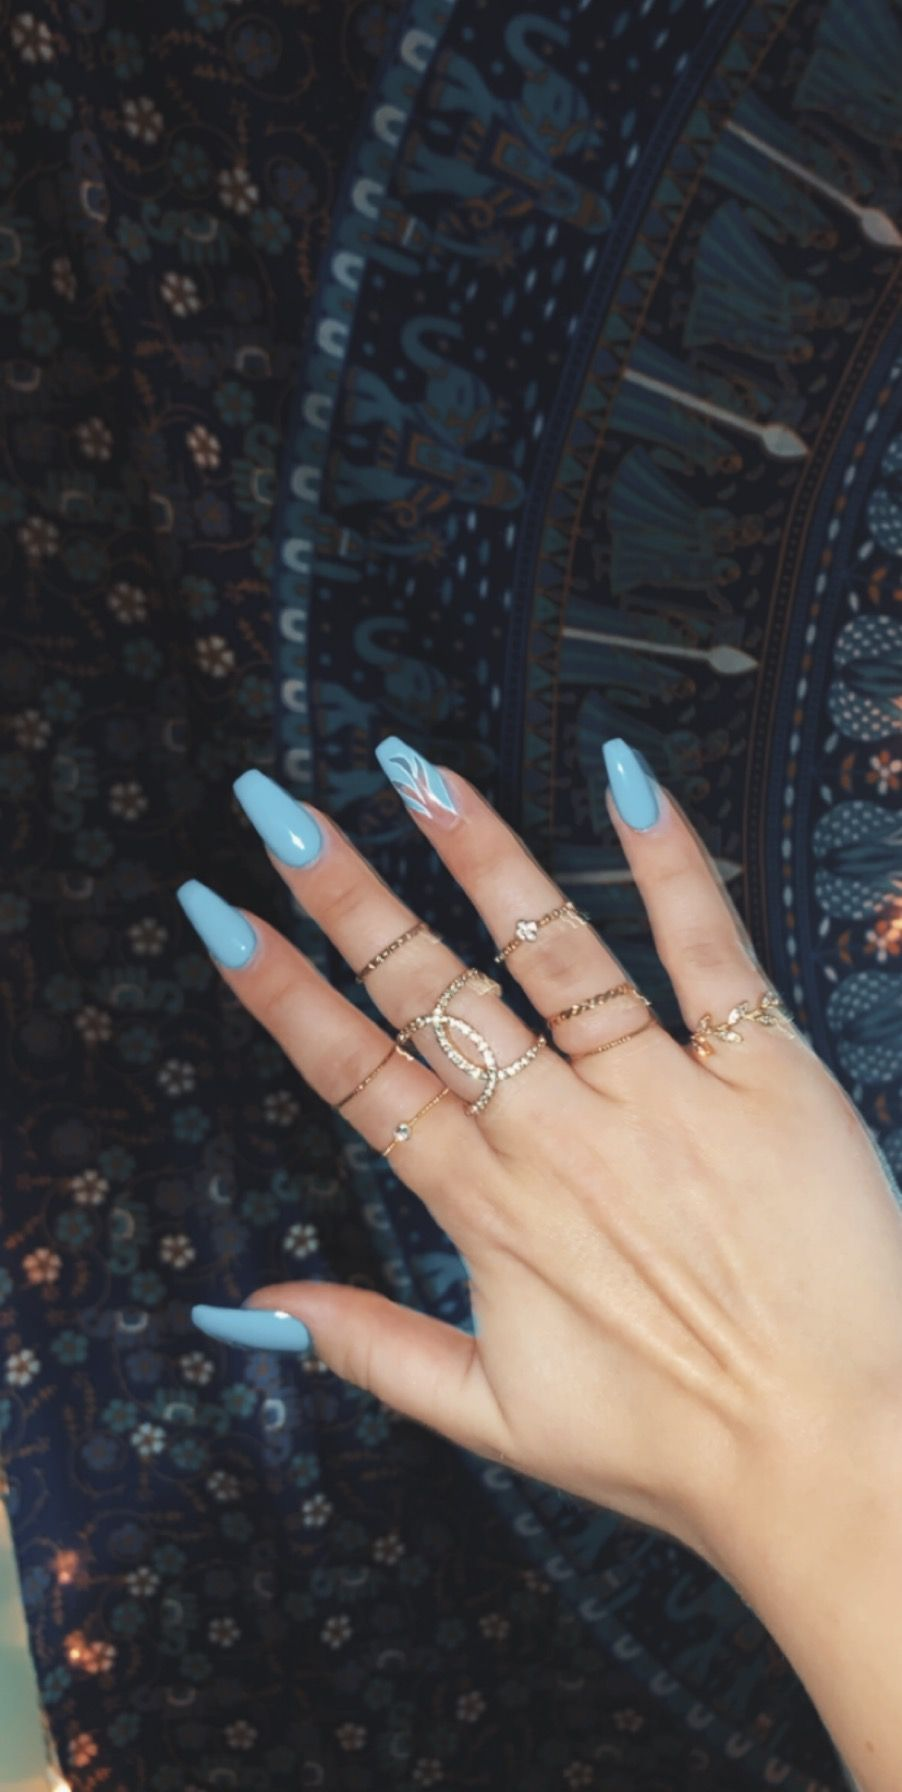 Blue Flame Acrylic Nails In 2020 Acrylic Nails Coffin Short Blue Acrylic Nails Coffin Shape Nails